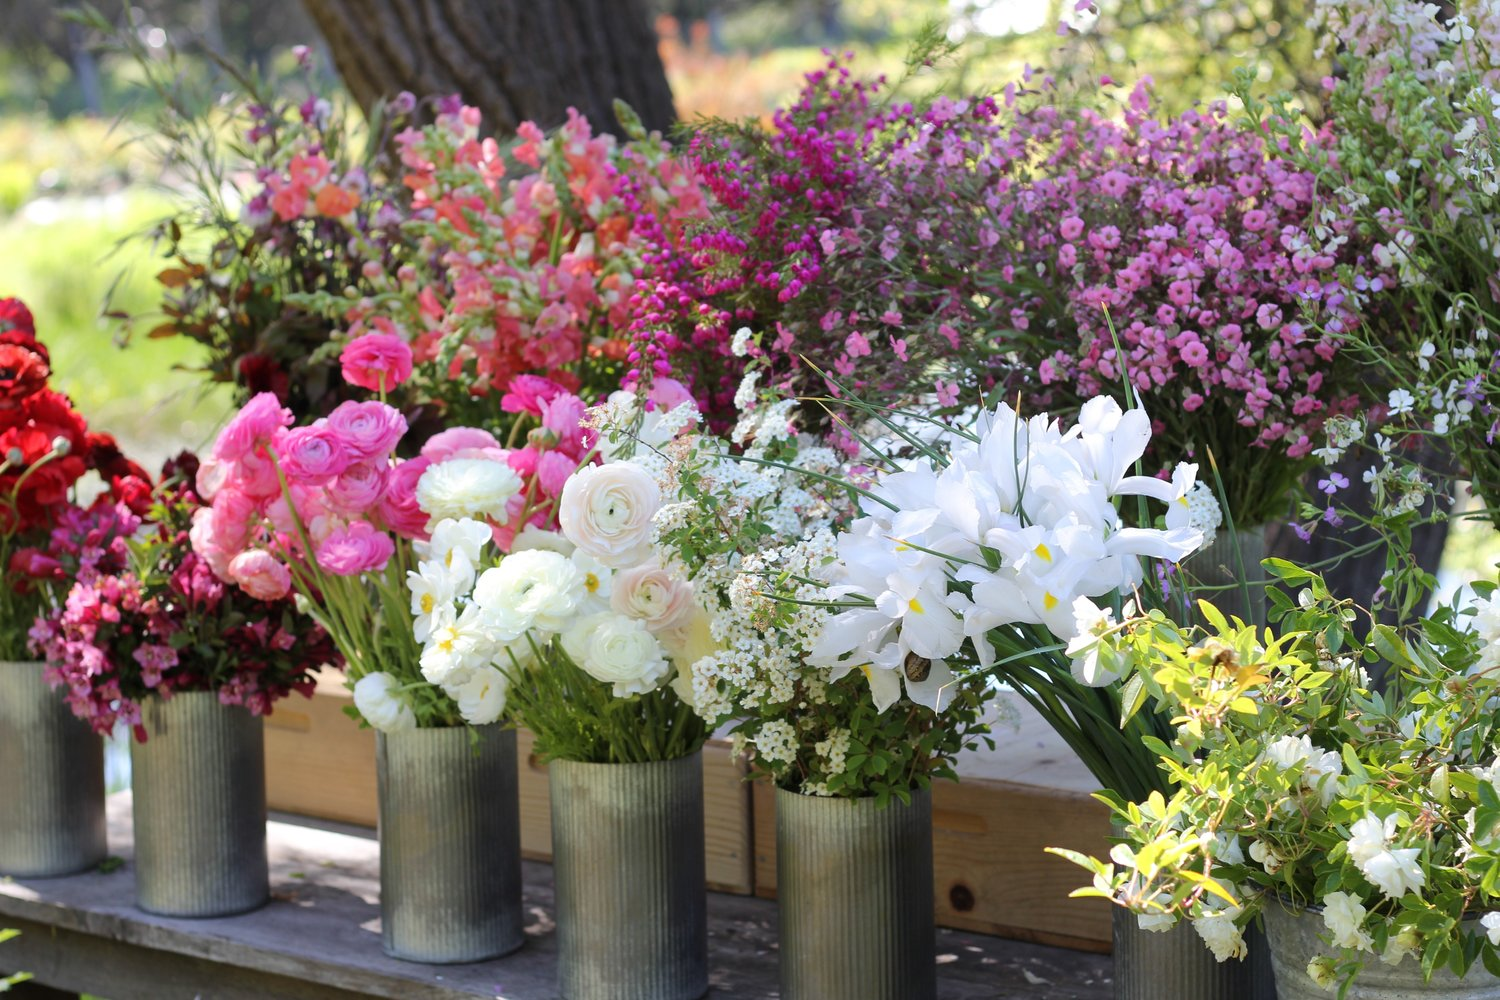 How to Grow Bouquets All Summer